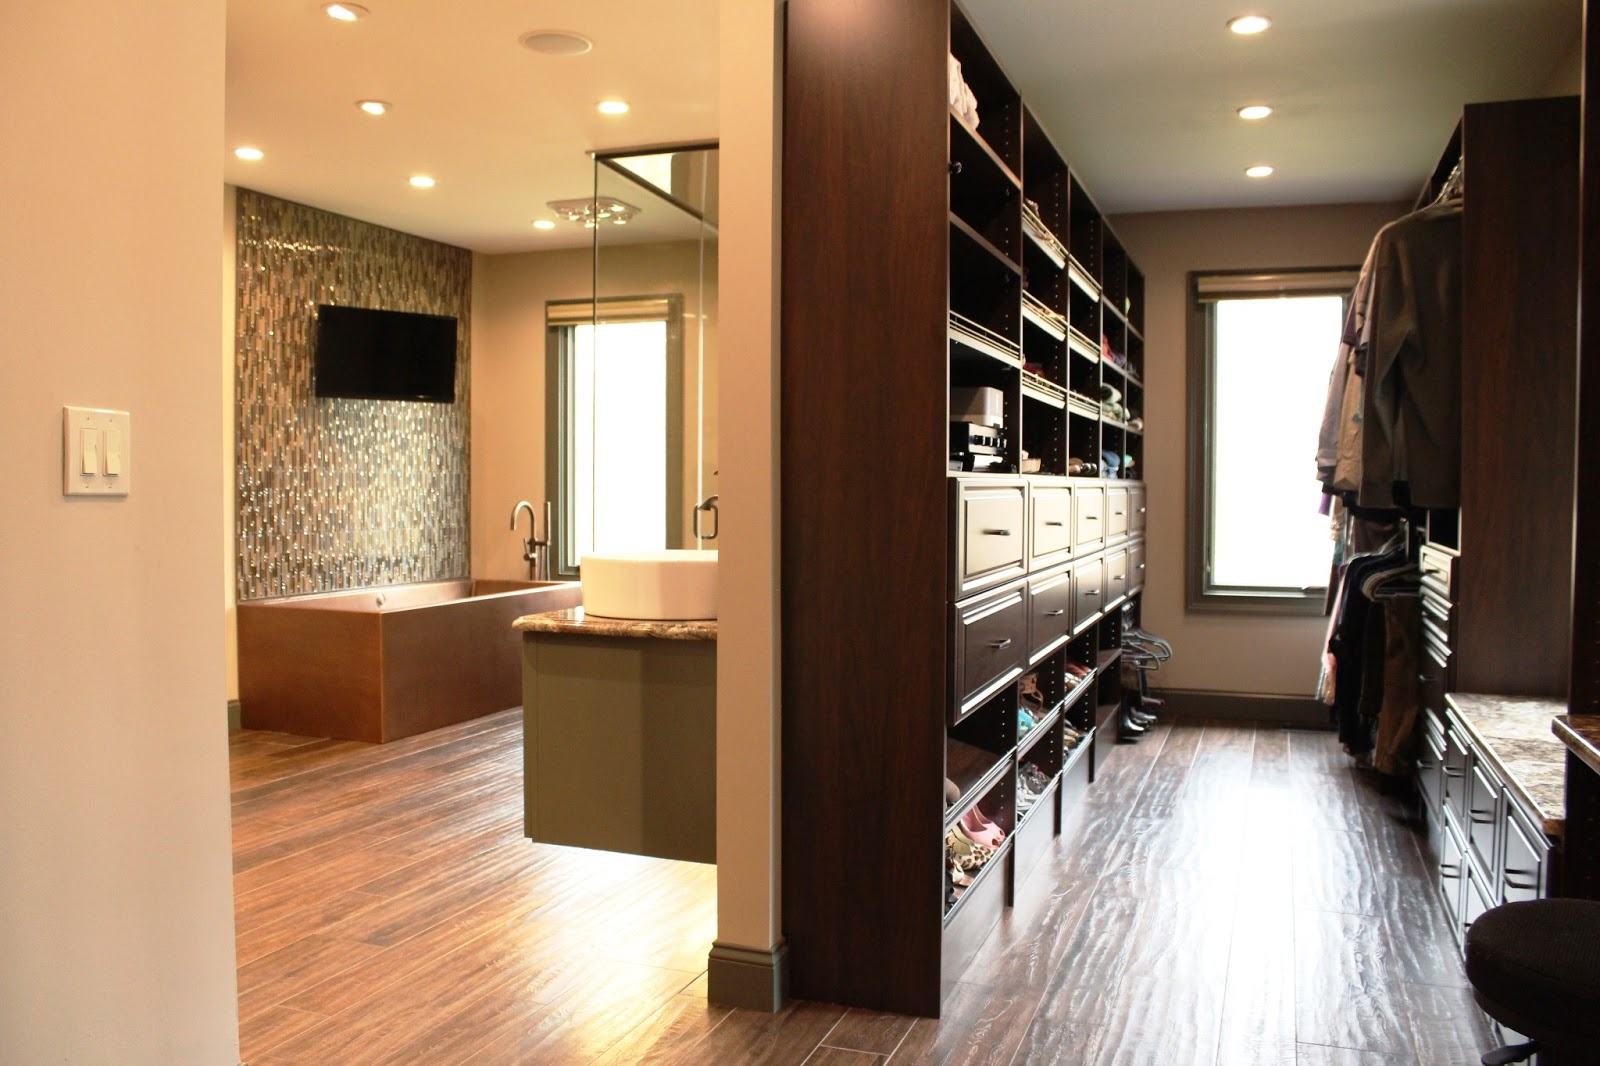 Walk in closet and bathroom ideas 15 ways to make your walk in closet and bathroom convenient for Bedroom walk in closet designs